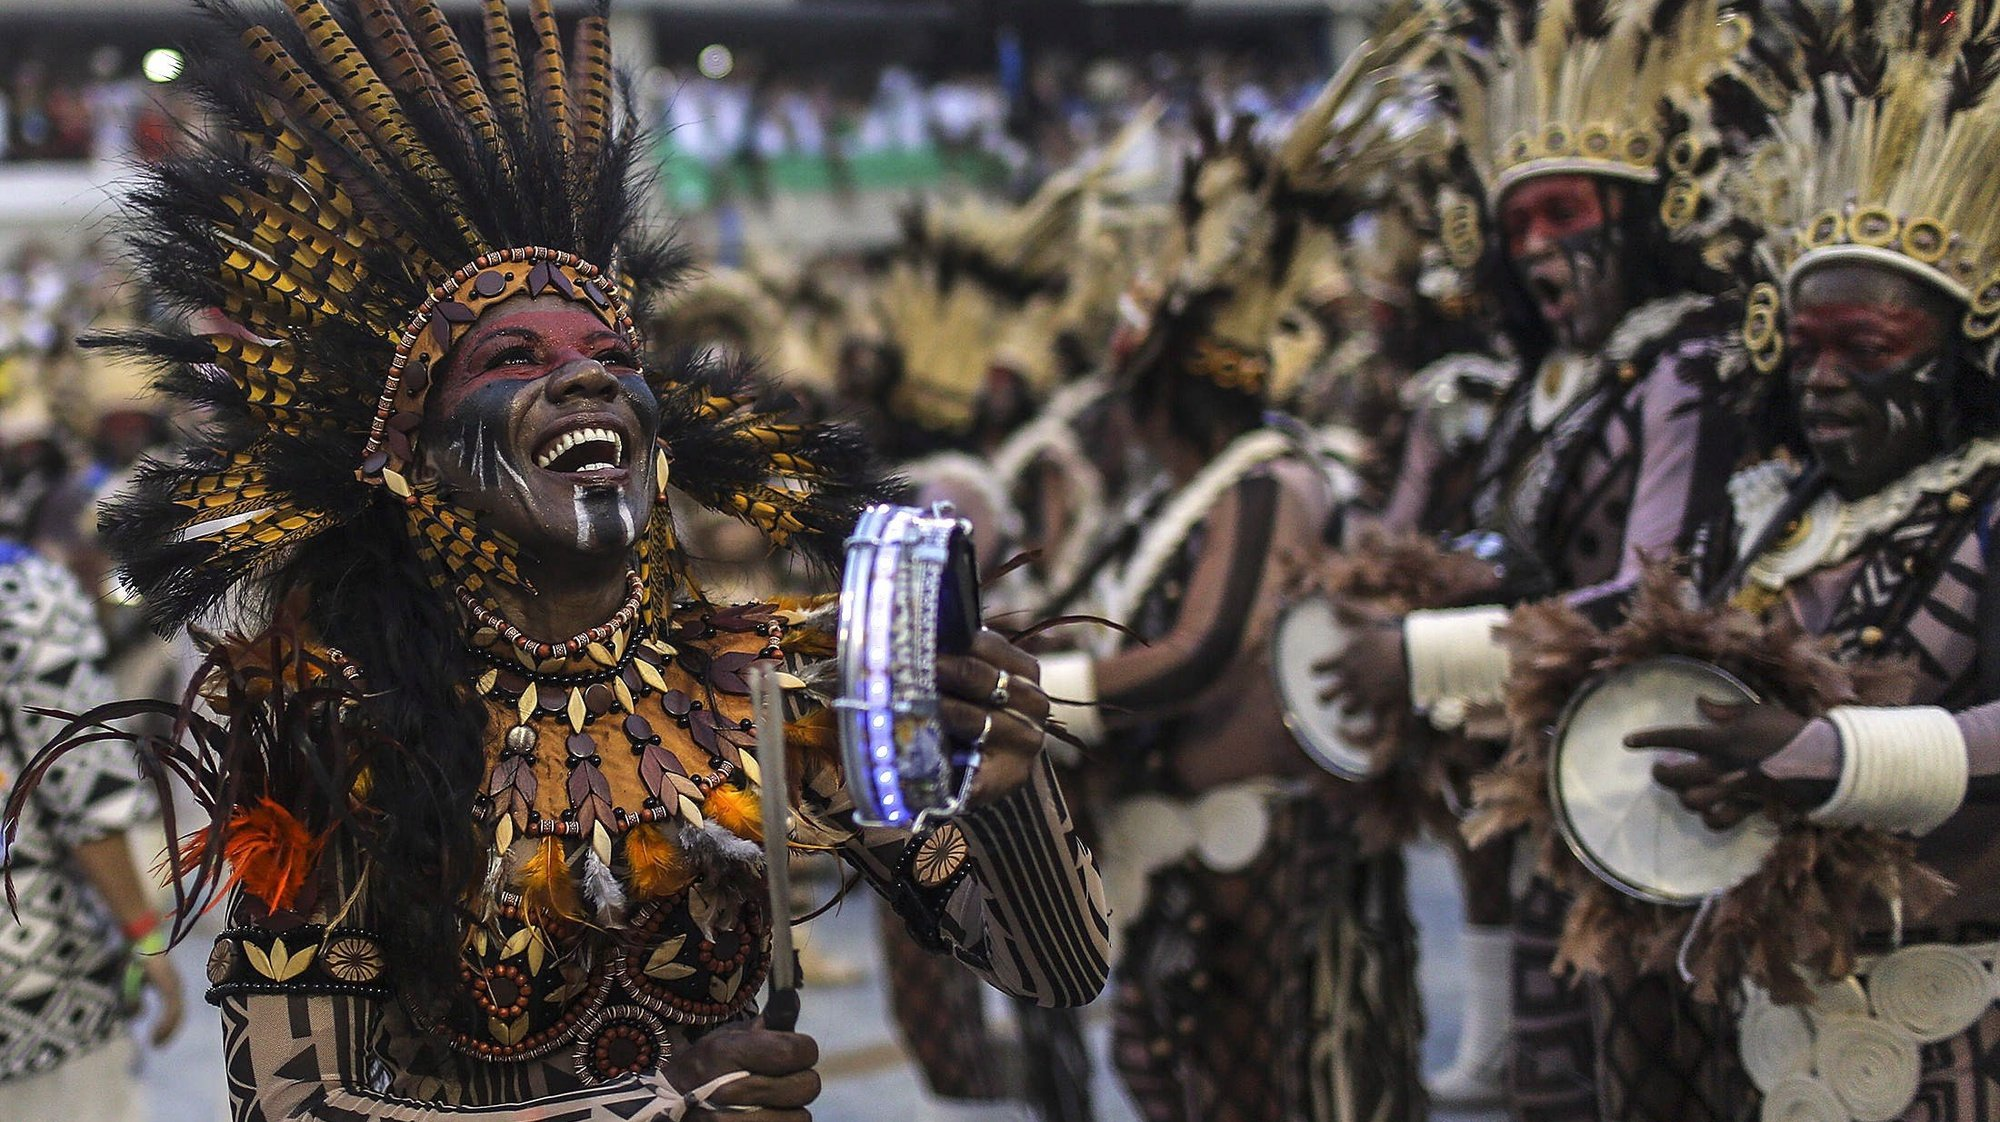 epa05818334 Members of the Special Group of the Beija-Flor samba school  perform during a parade held during Rio de Janeiro's Carnival at the Sambodromo in Rio de Janeiro, Brazil, 26 February 2017. A float accidentally ran over a group of participants injuring eight people after it lost control and crashed against one side of one of the pavillions, it was when it reversed to get back on track when it ran over eight of the participants taking part in the parade.  EPA/ANTONIO LACERDA